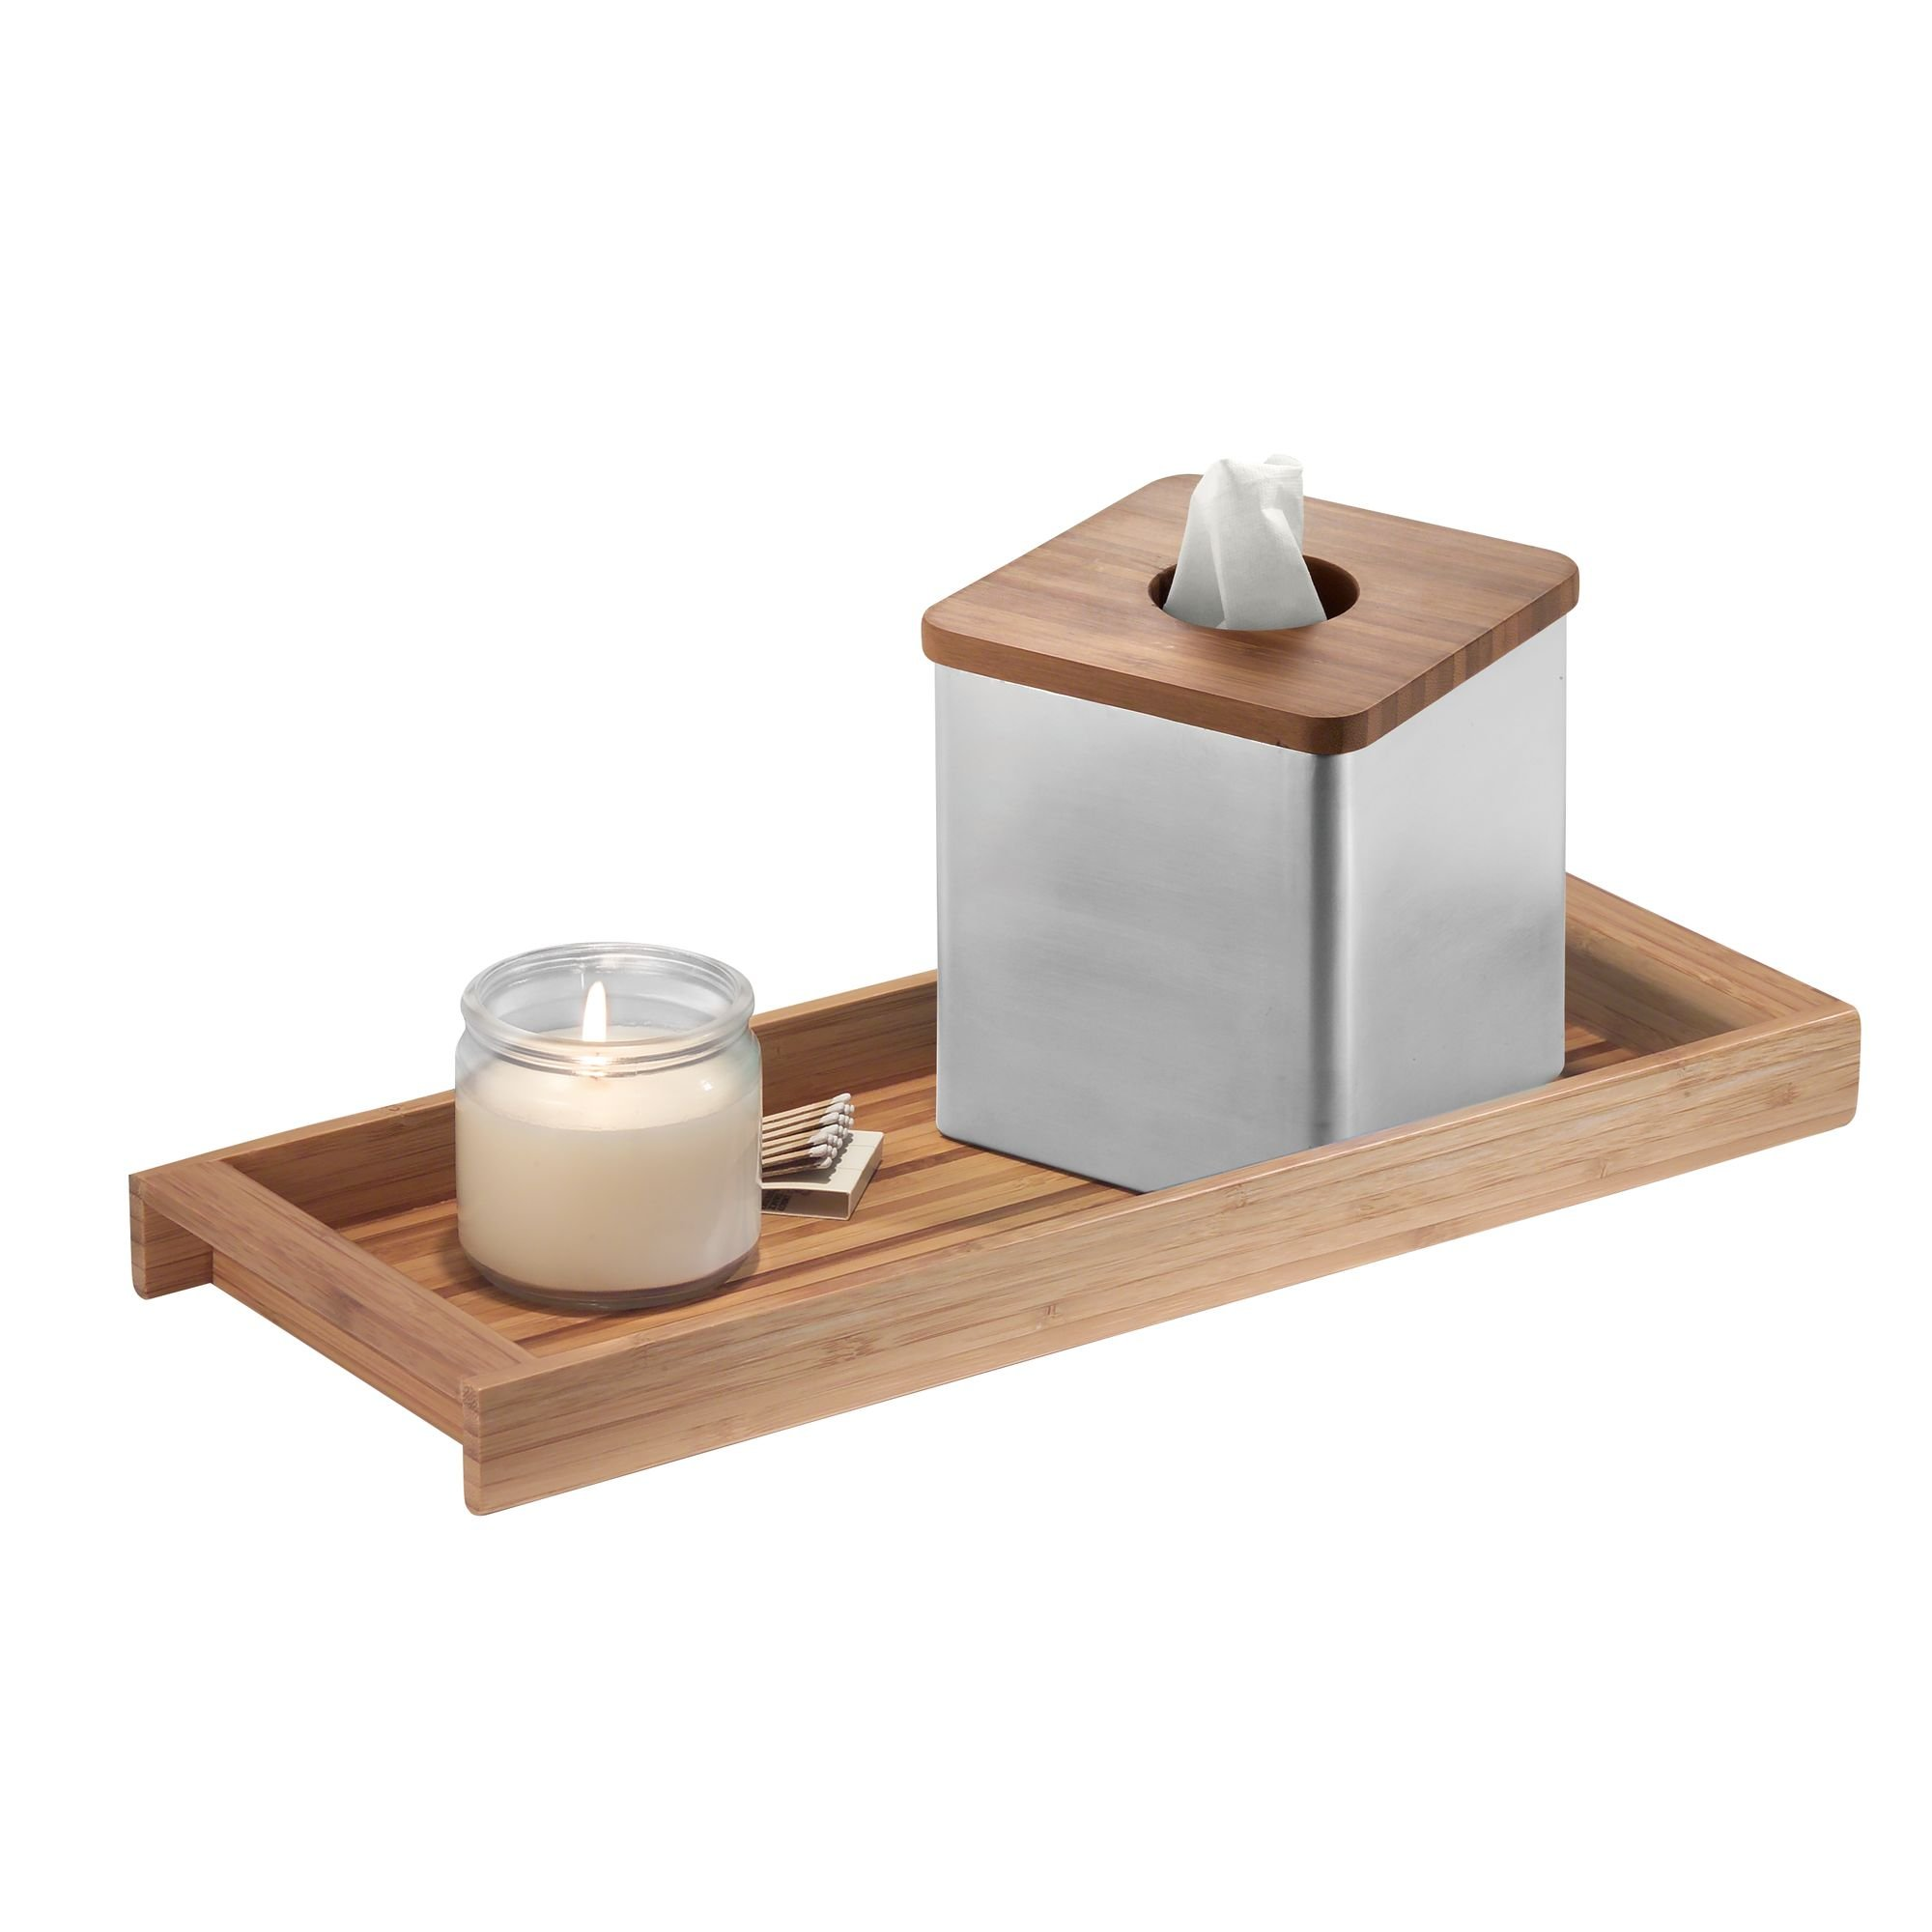 iDesign Formbu Wood Tank Top Storage Tray Wooden Organizer for Tissues, Candles, Soap, Hand Towels, Toilet Paper, Natural Bamboo